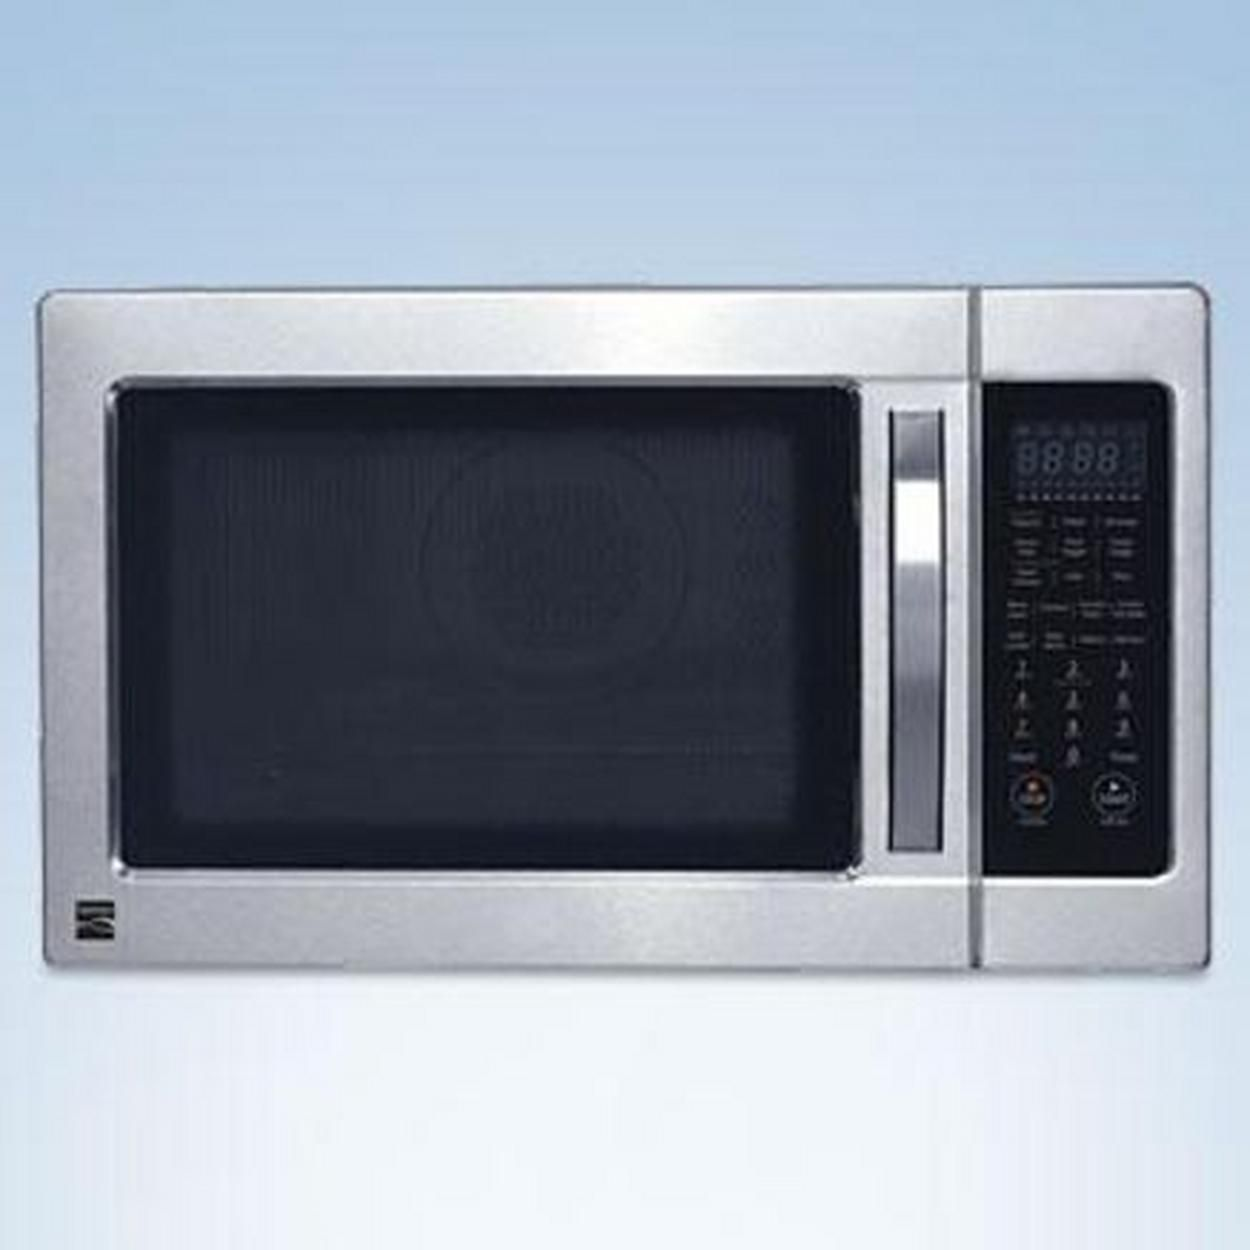 """Buy Convection Microwave Oven Online: Buy 21"""" 1 Cu. Ft. Convection Microwave Oven"""